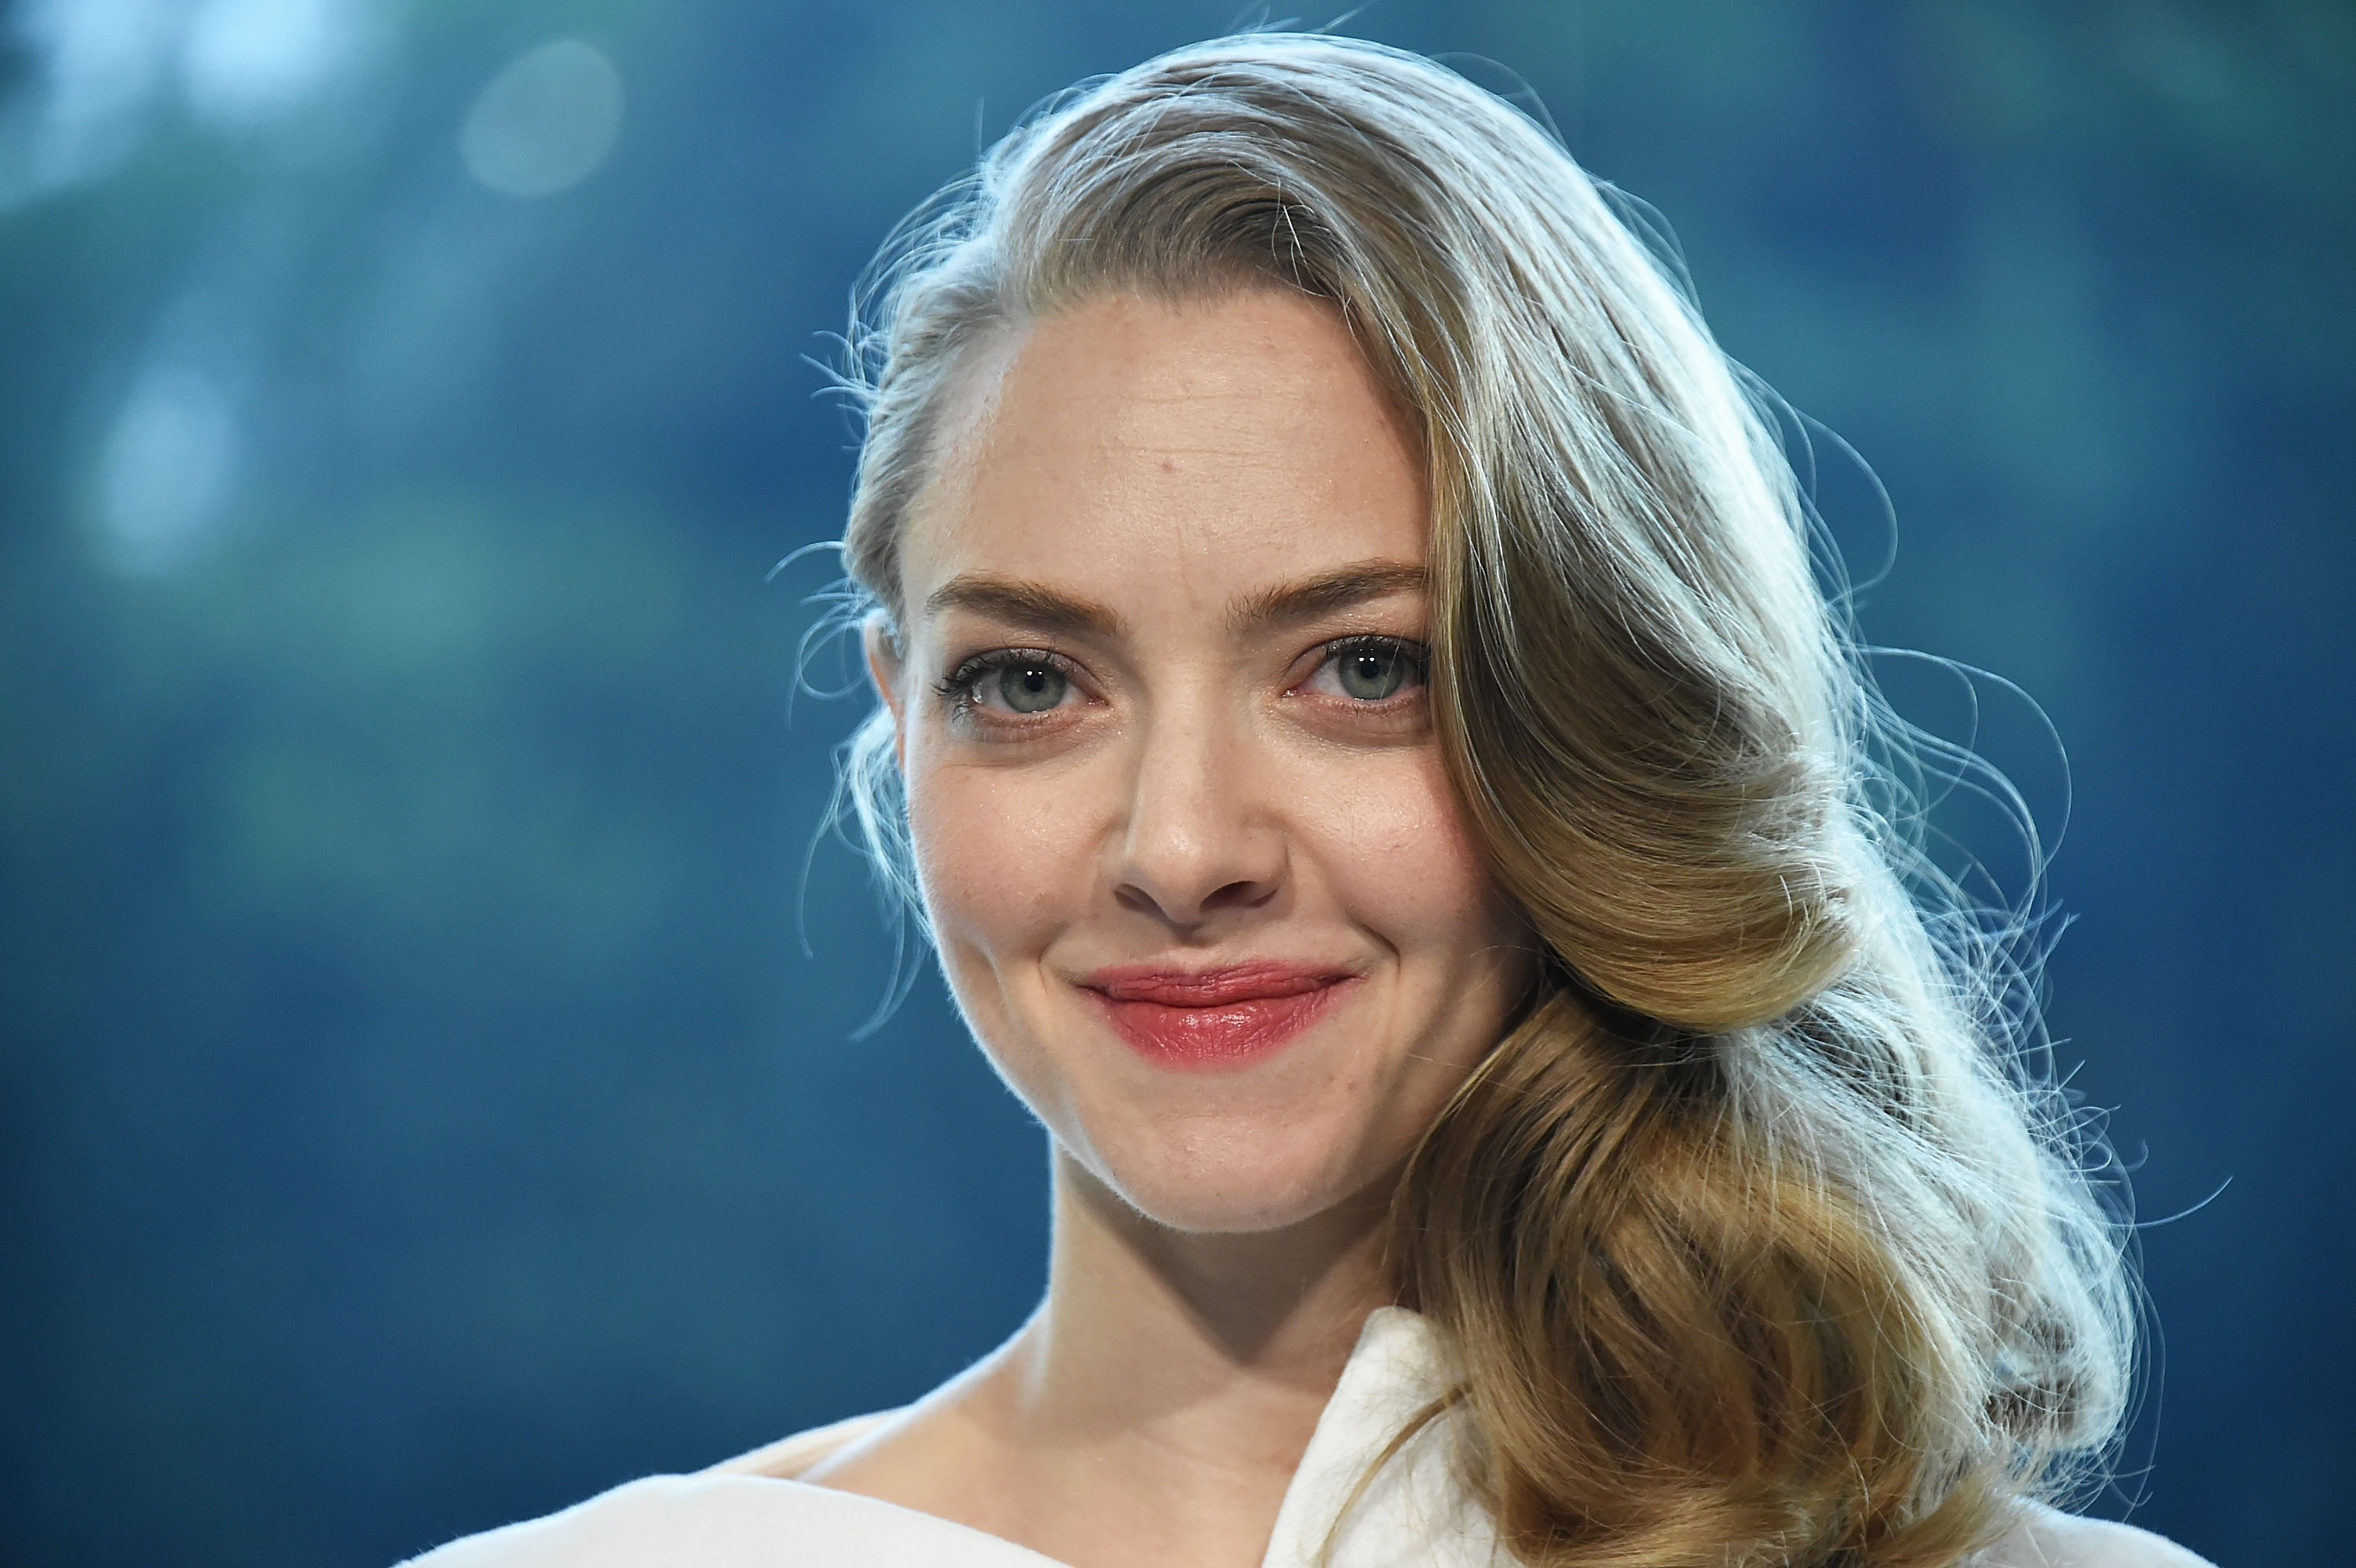 Amanda Seyfried's engagement ring is gorgeously plain — and we want one just like it